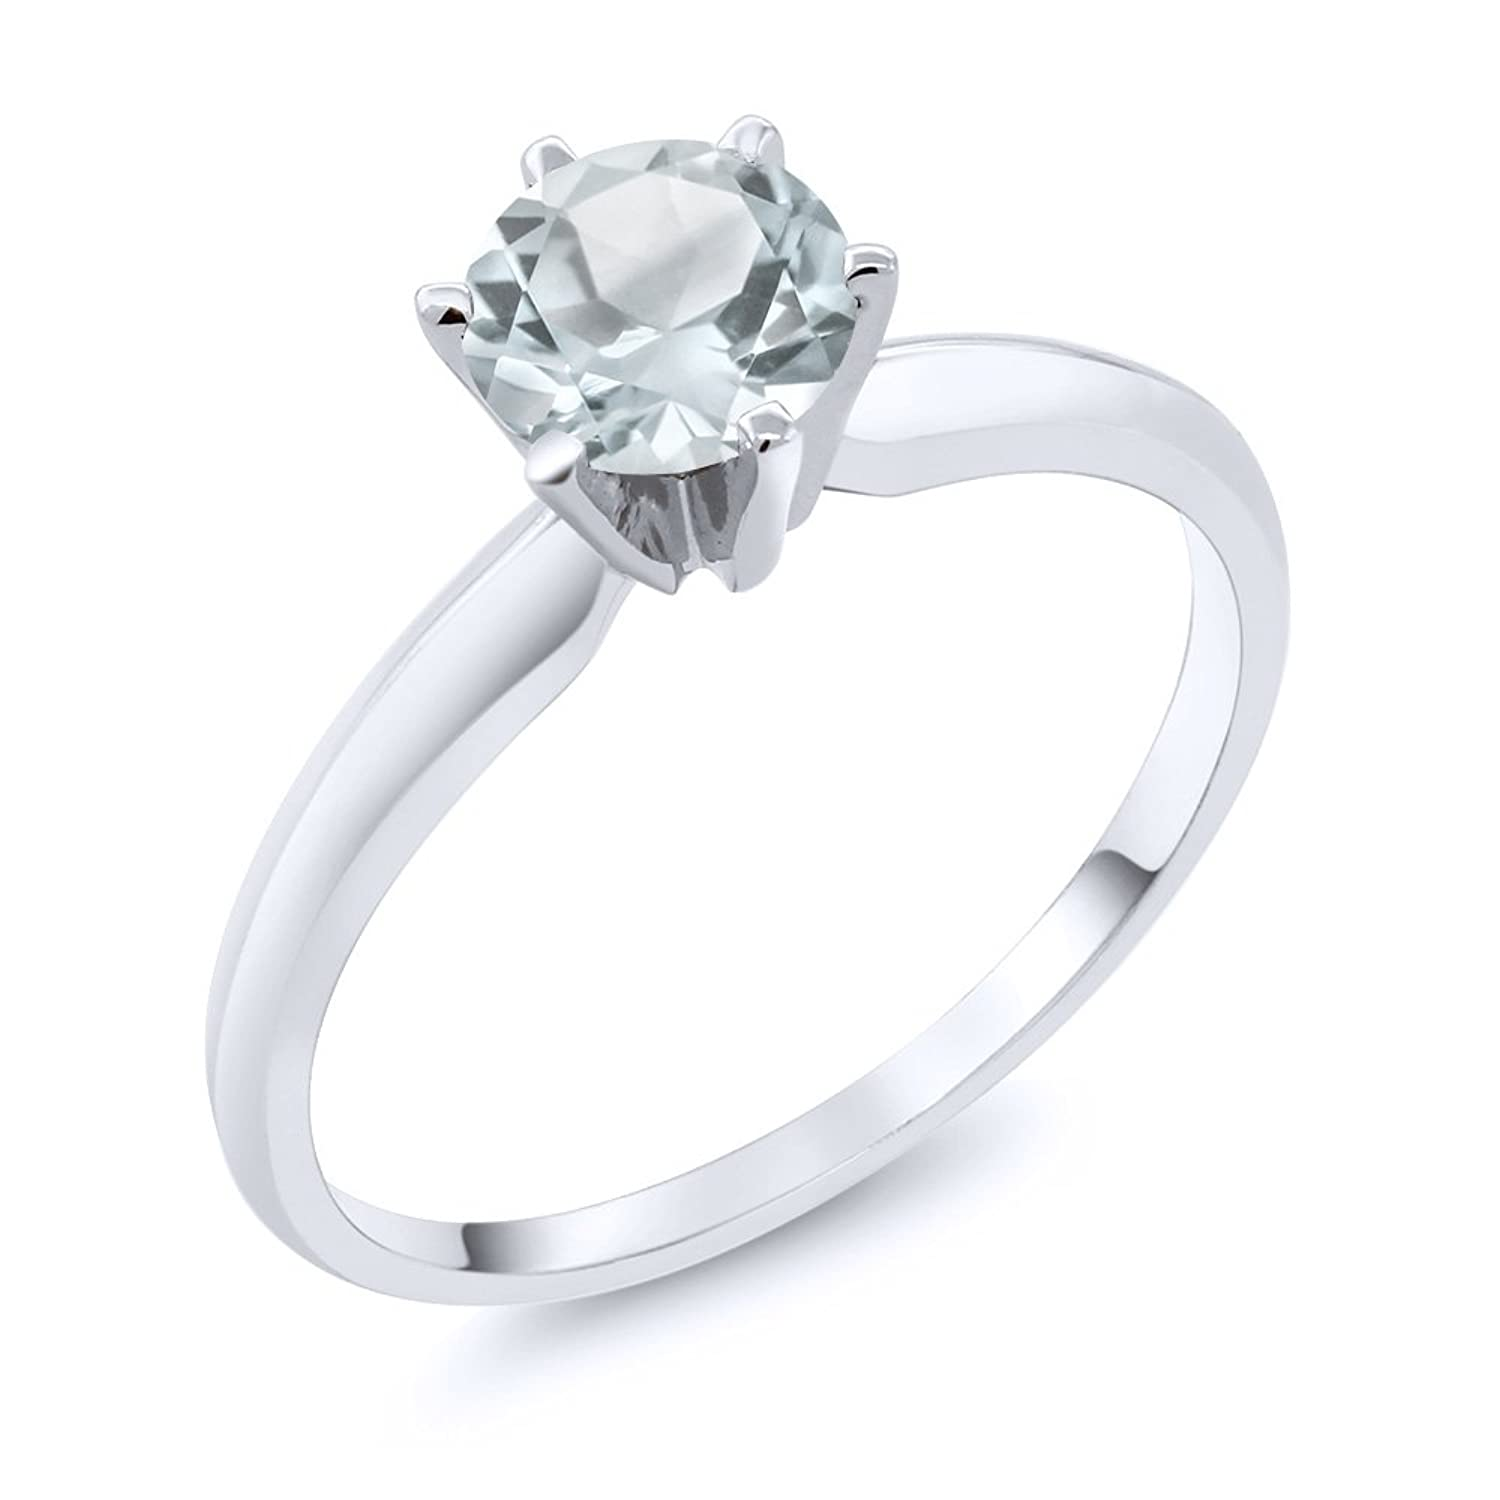 0.75 Ct Sky Blue Aquamarine 14K White Gold Engagement Solitaire Ring (Available in size 5, 6, 7, 8, 9)